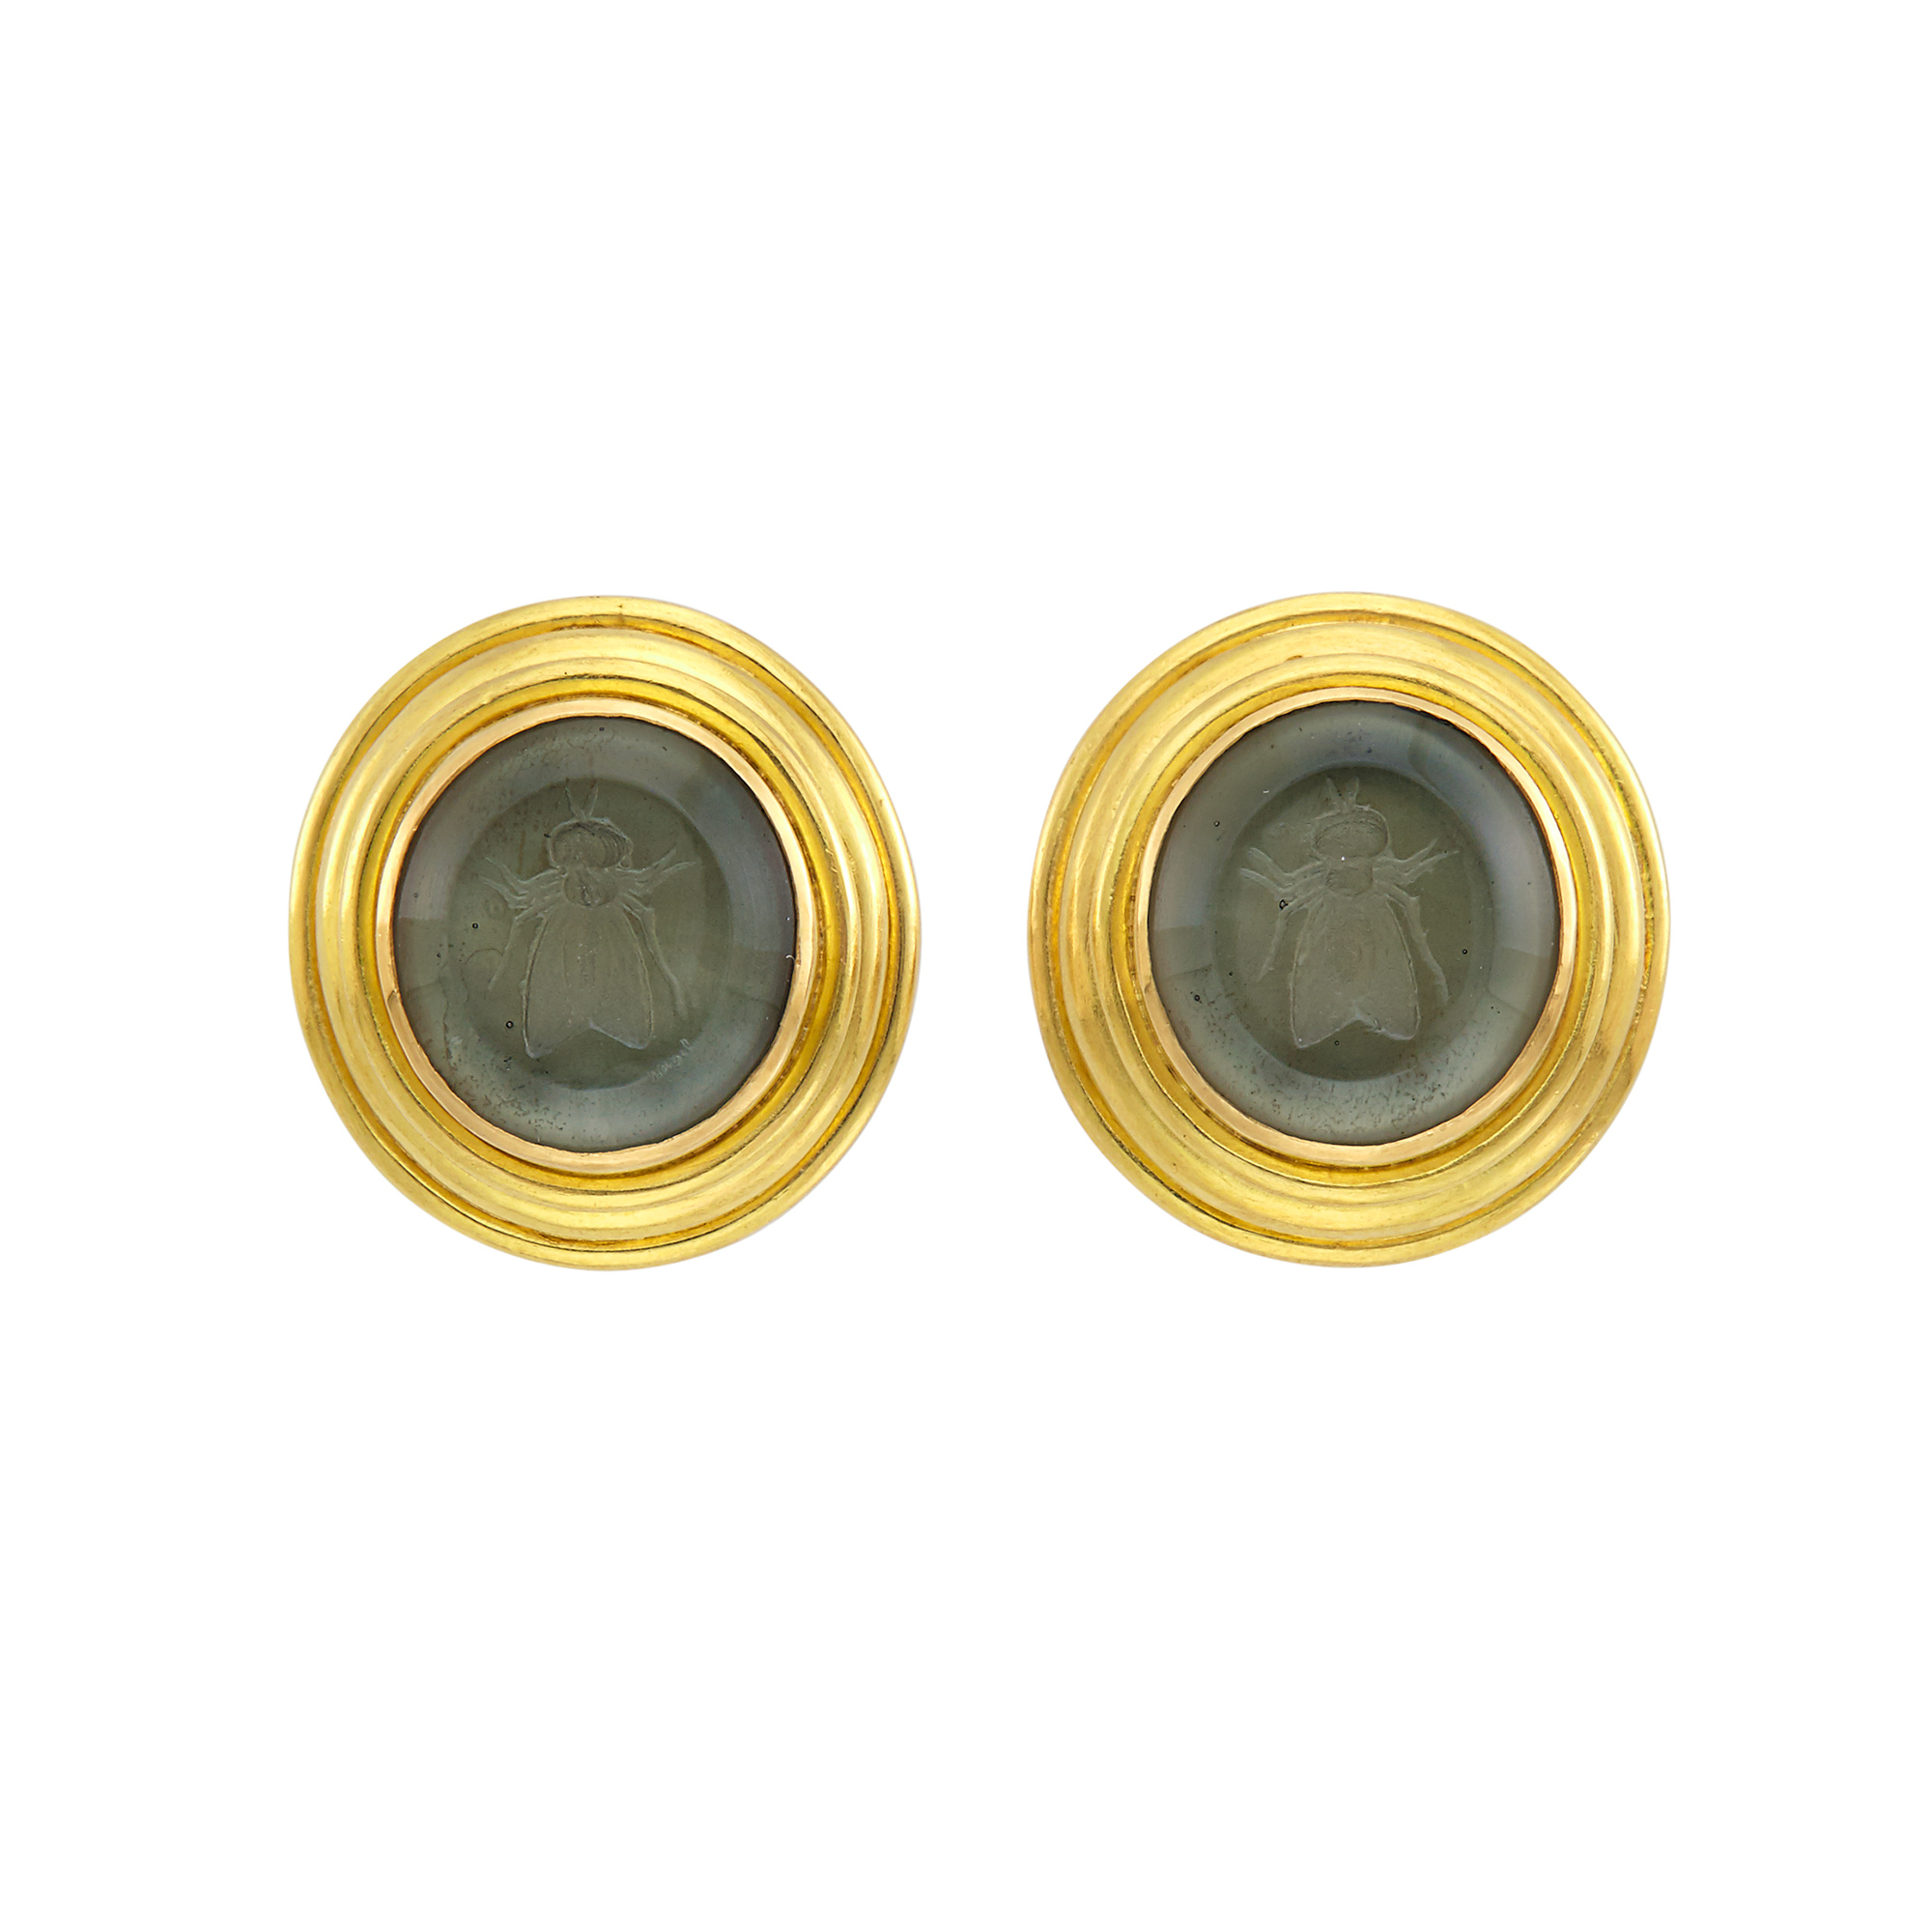 Lot image - Pair of Gold, Green Glass Intaglio and Mother-of-Pearl Earclips, Elizabeth Locke